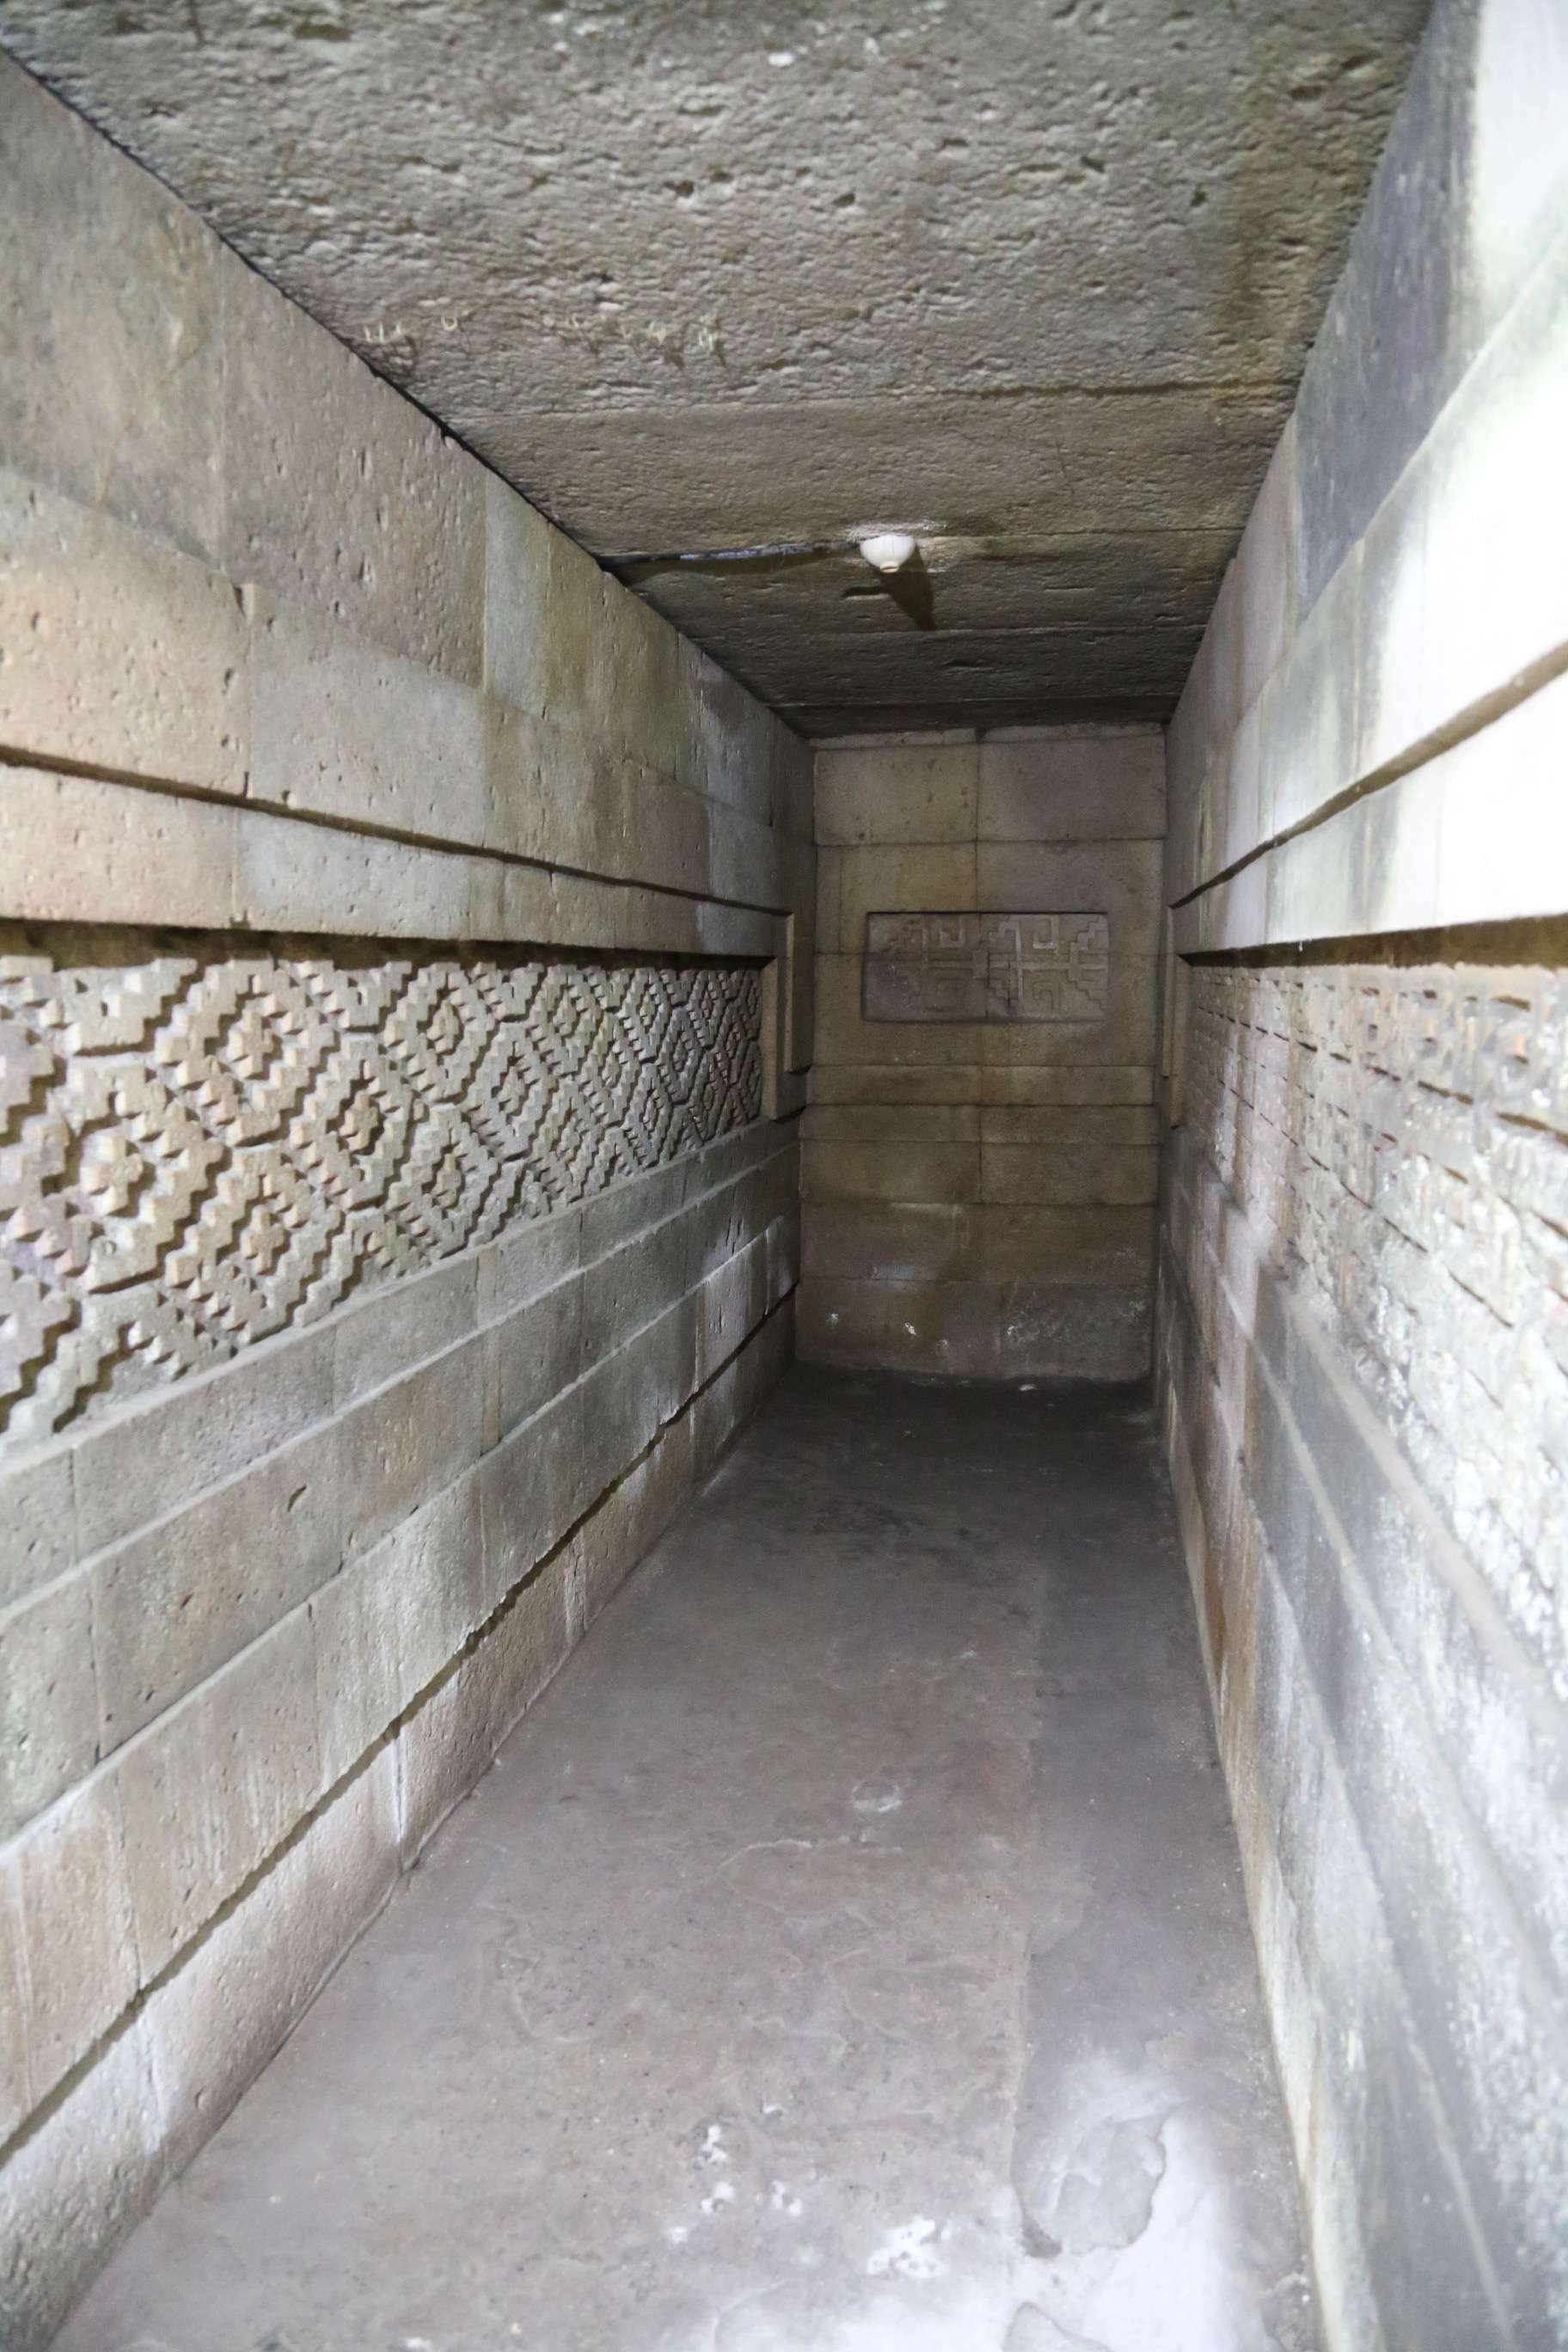 Intricate fretwork carved directly into the stone, as in this burial chamber, are found nowhere else in Mexico's may ancient temples.